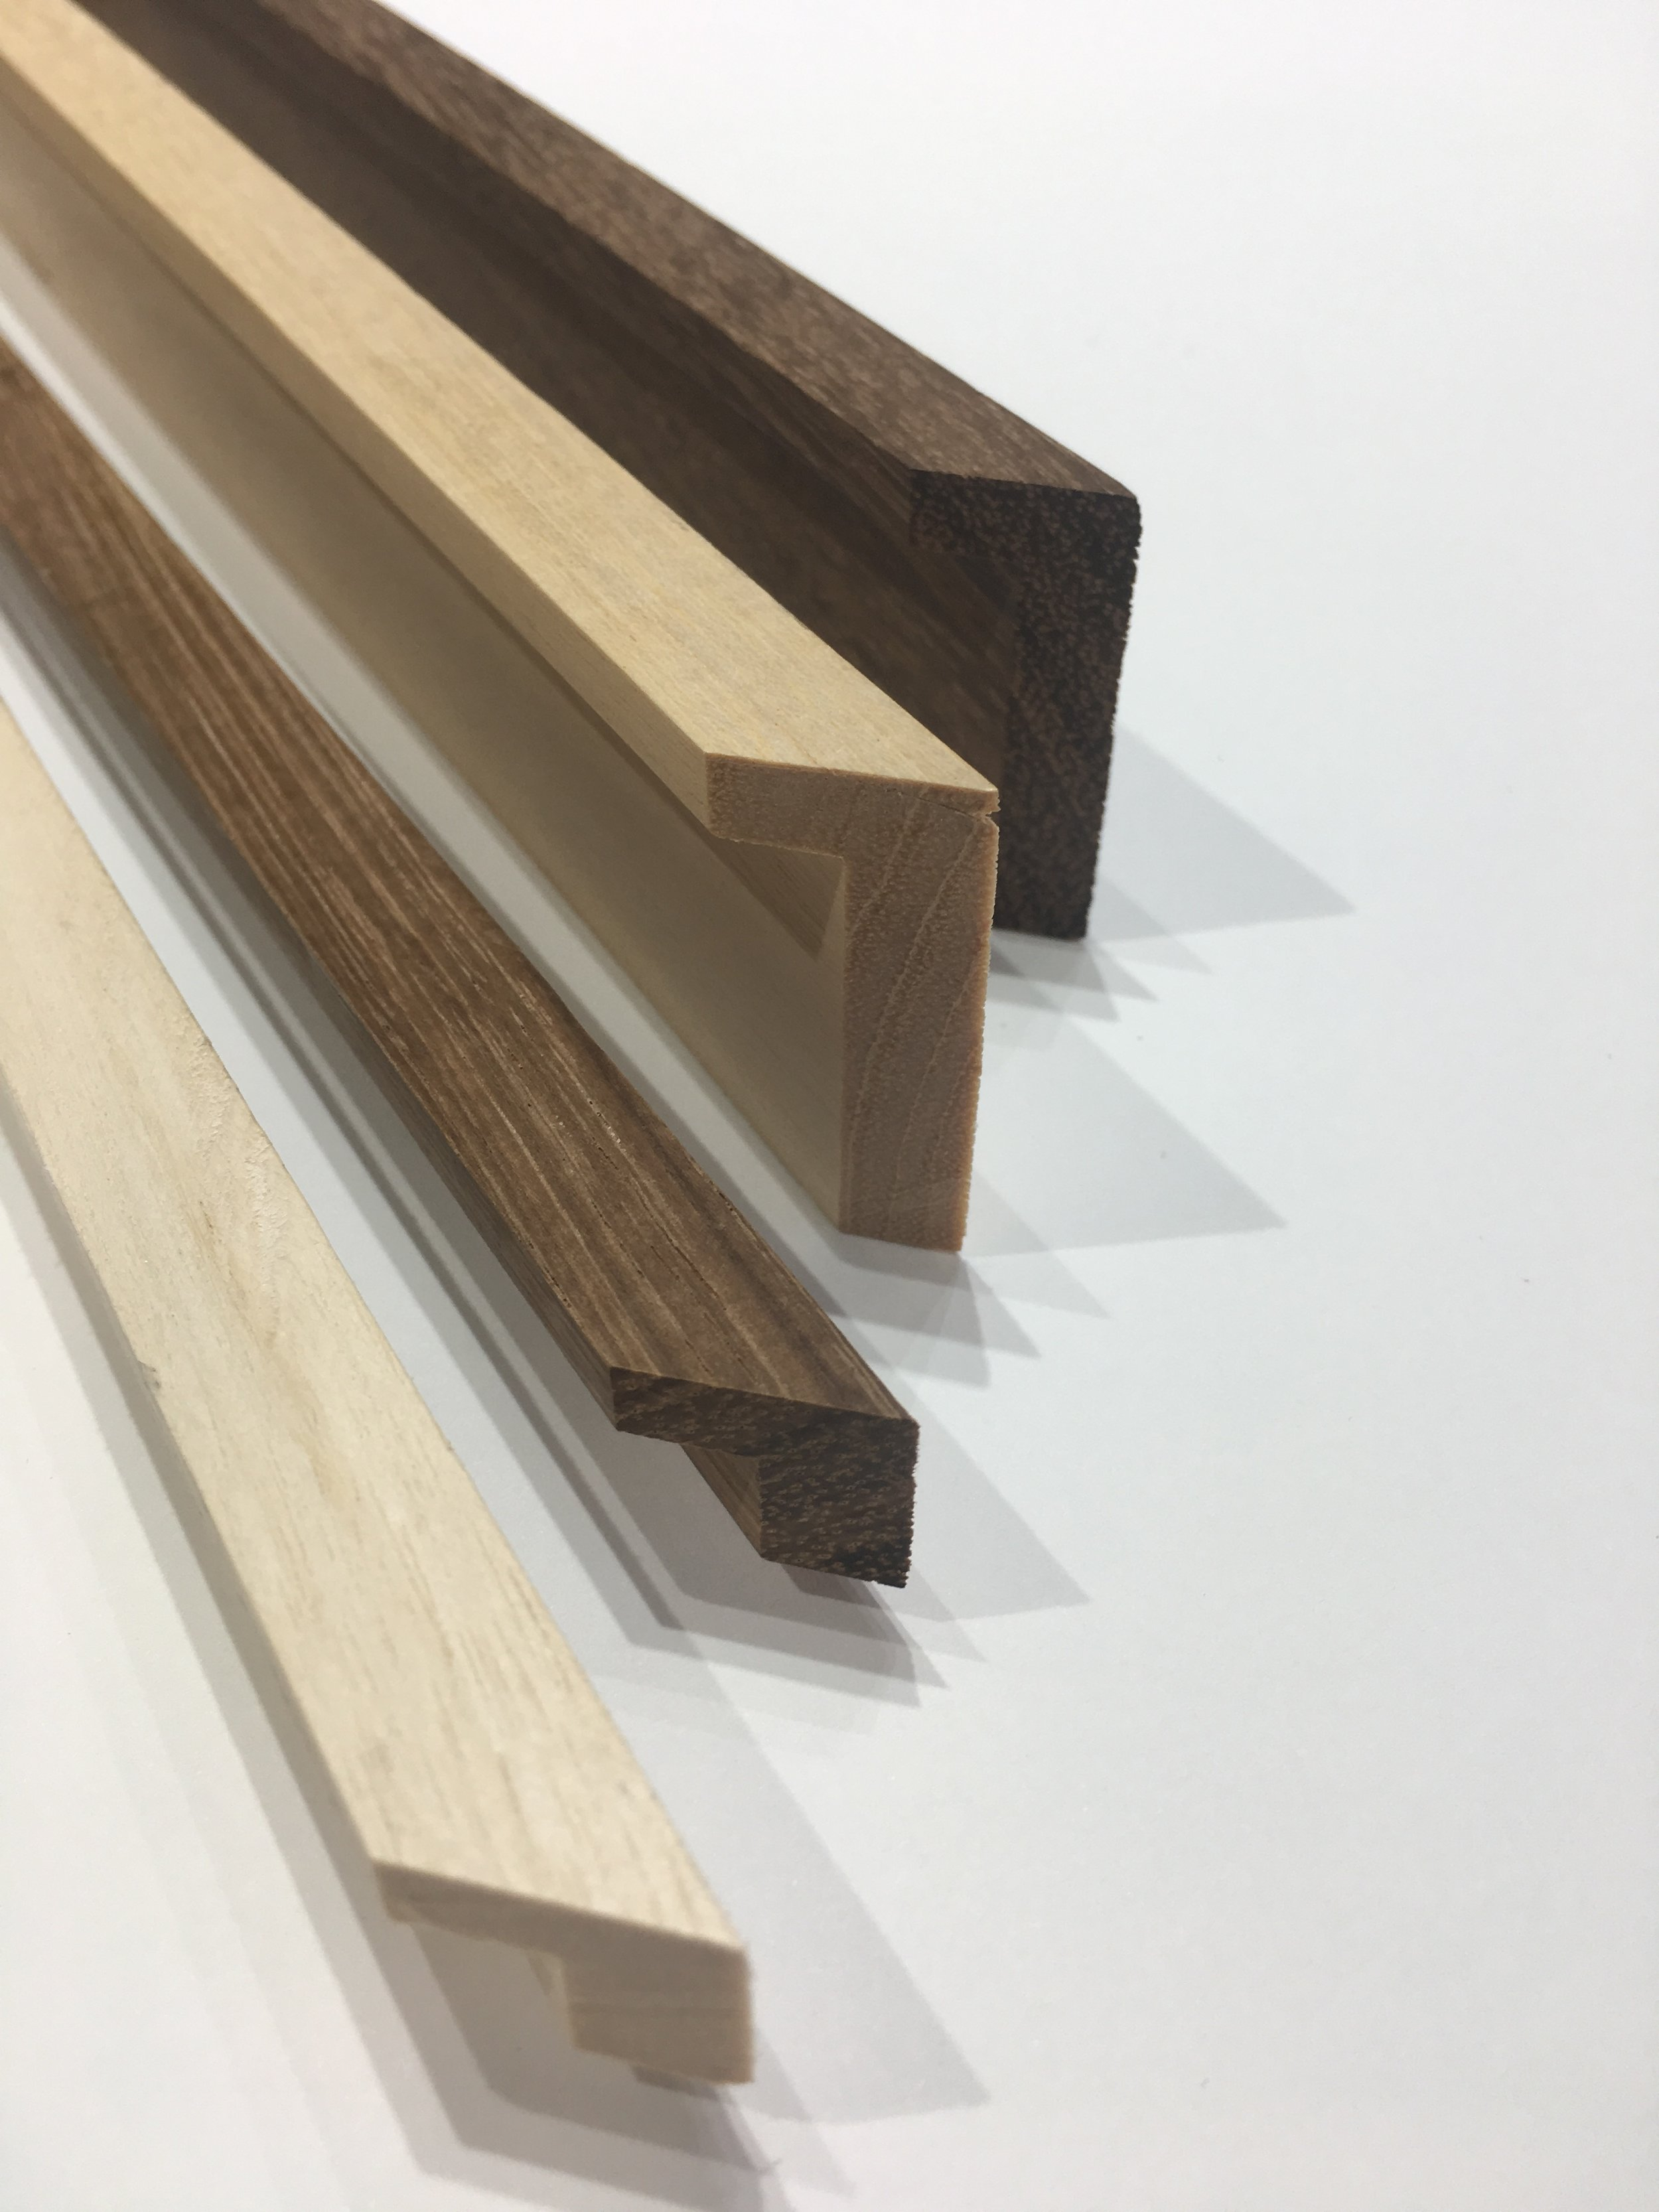 wholesale picture frame materials